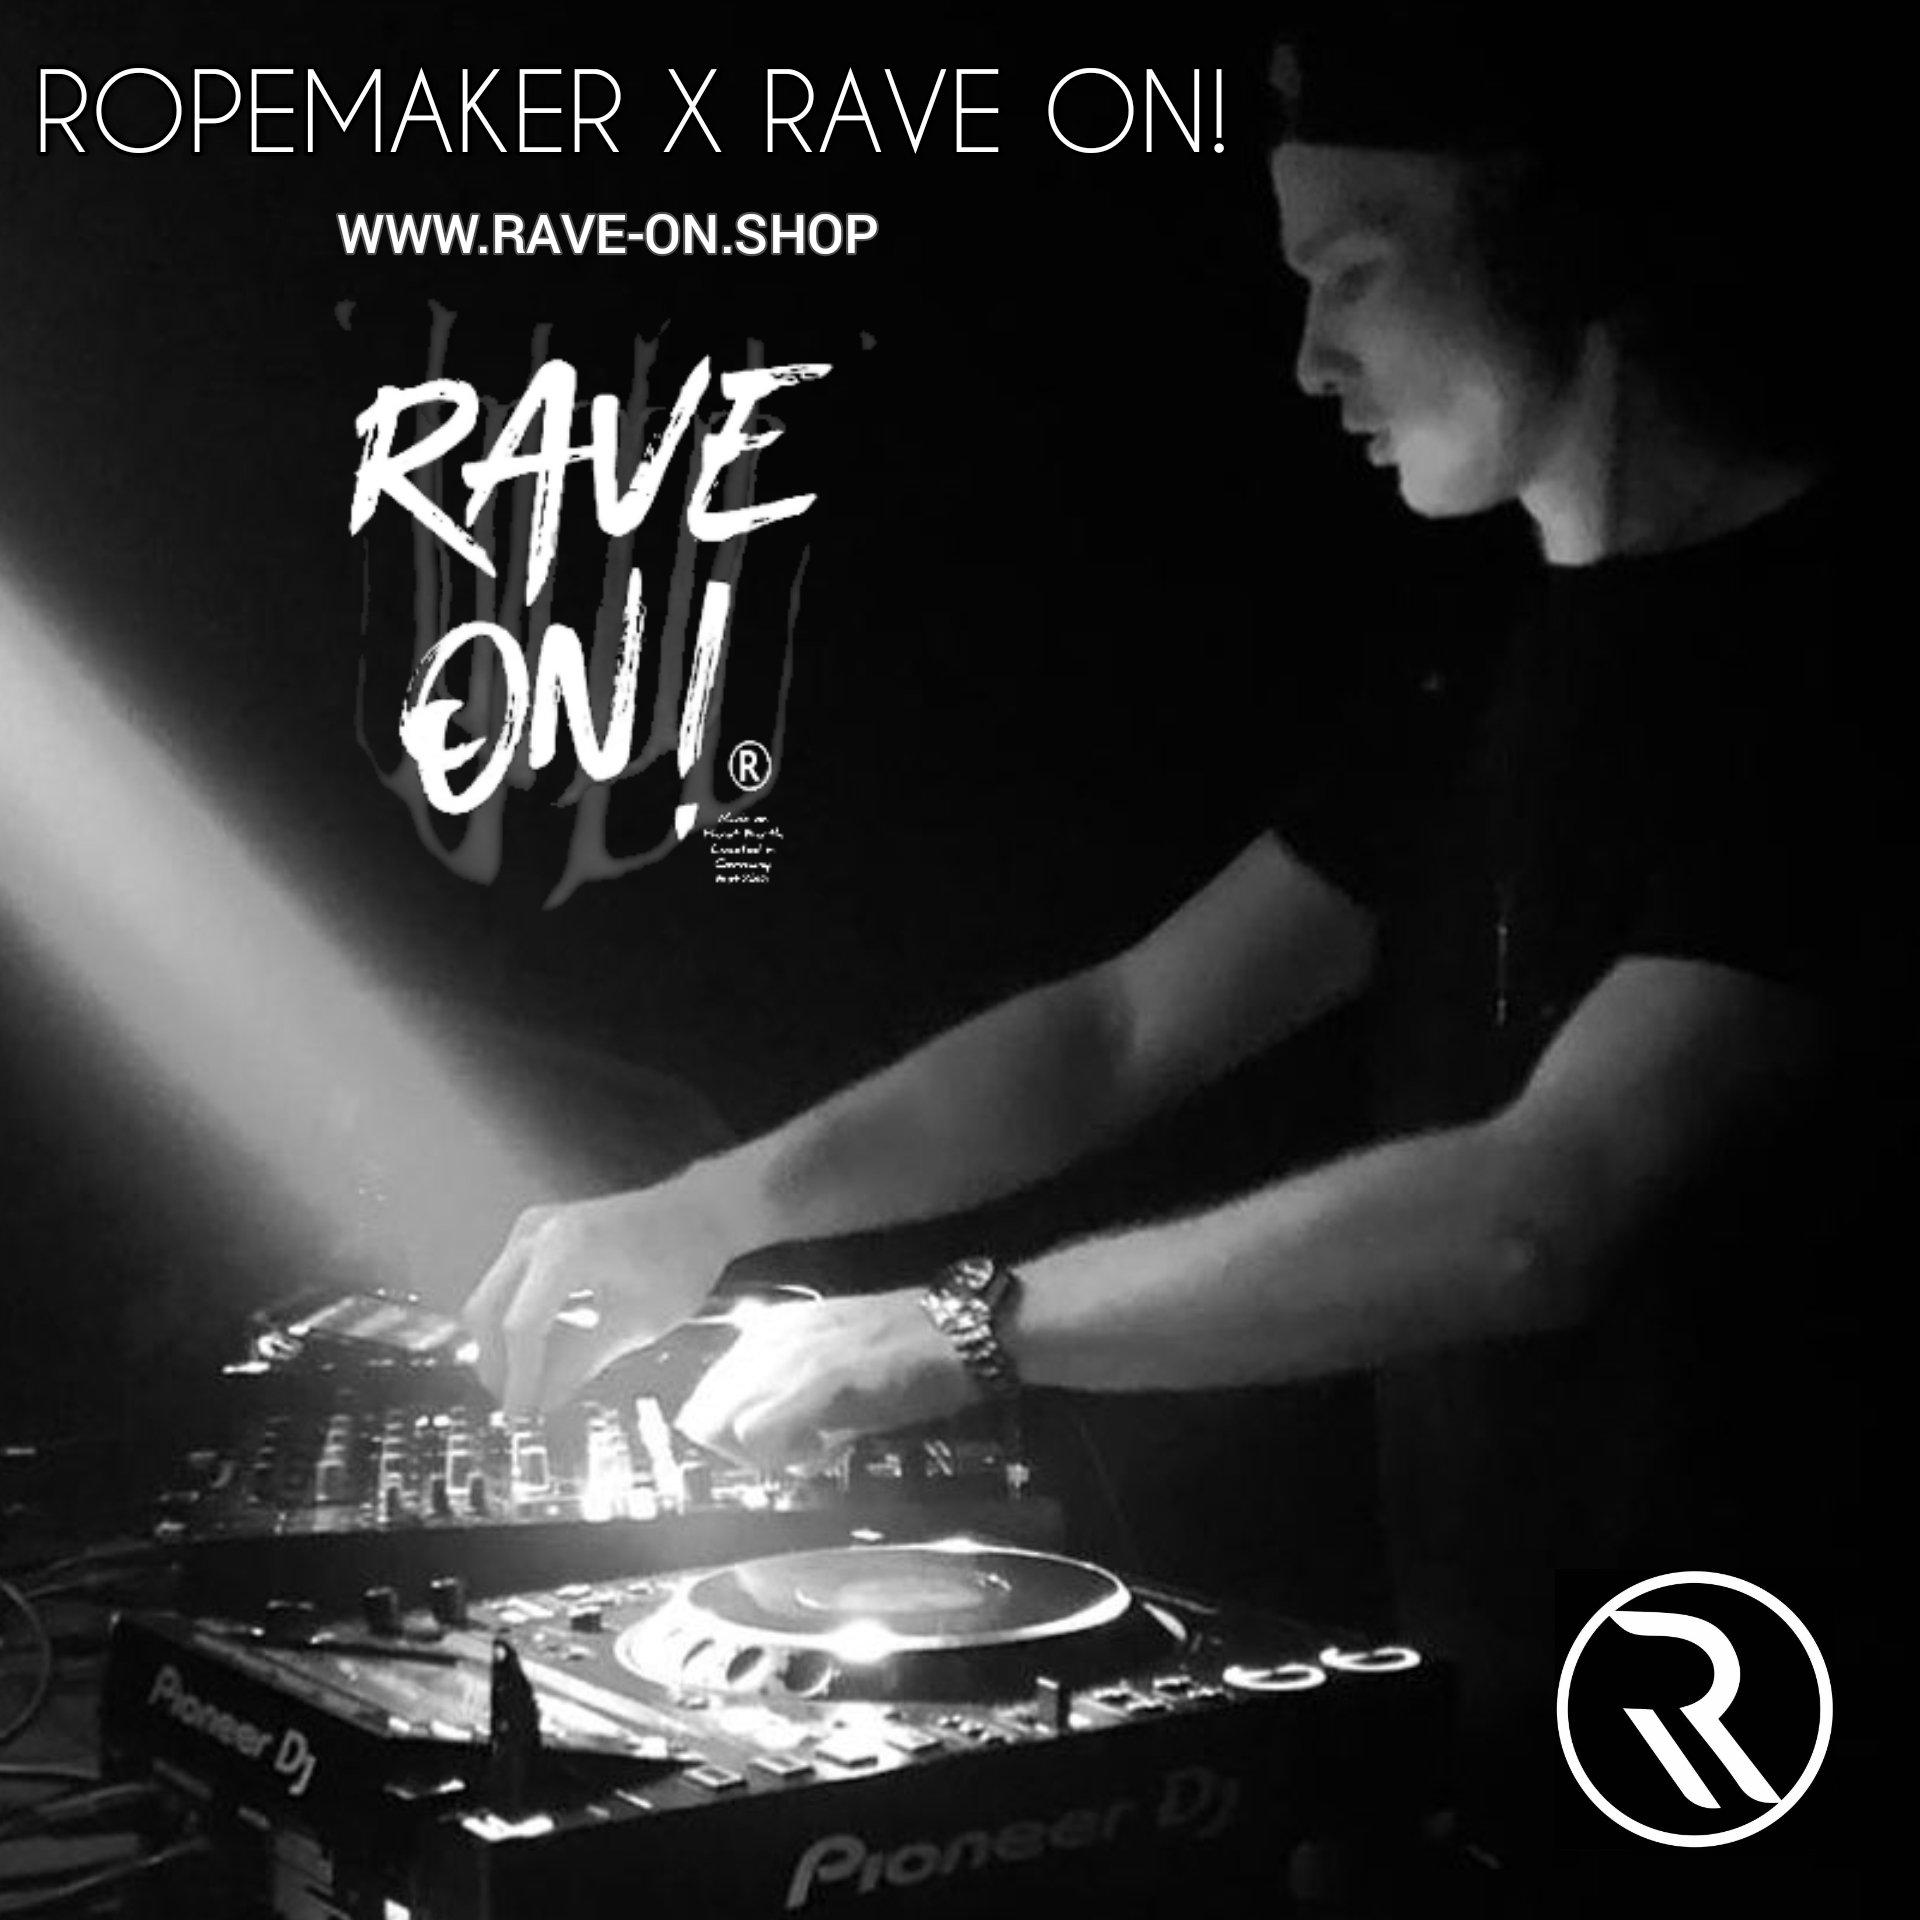 ROPEMAKER RAVE-ON!®️ BLACK T-SHIRT - Herren Premium Organic Shirt Creator T-Shirt ST/ST - Rave On!® der Club & Techno Szene Shop für Coole Junge Mode Streetwear Style & Fashion Outfits + Sexy Festival 420 Stuff